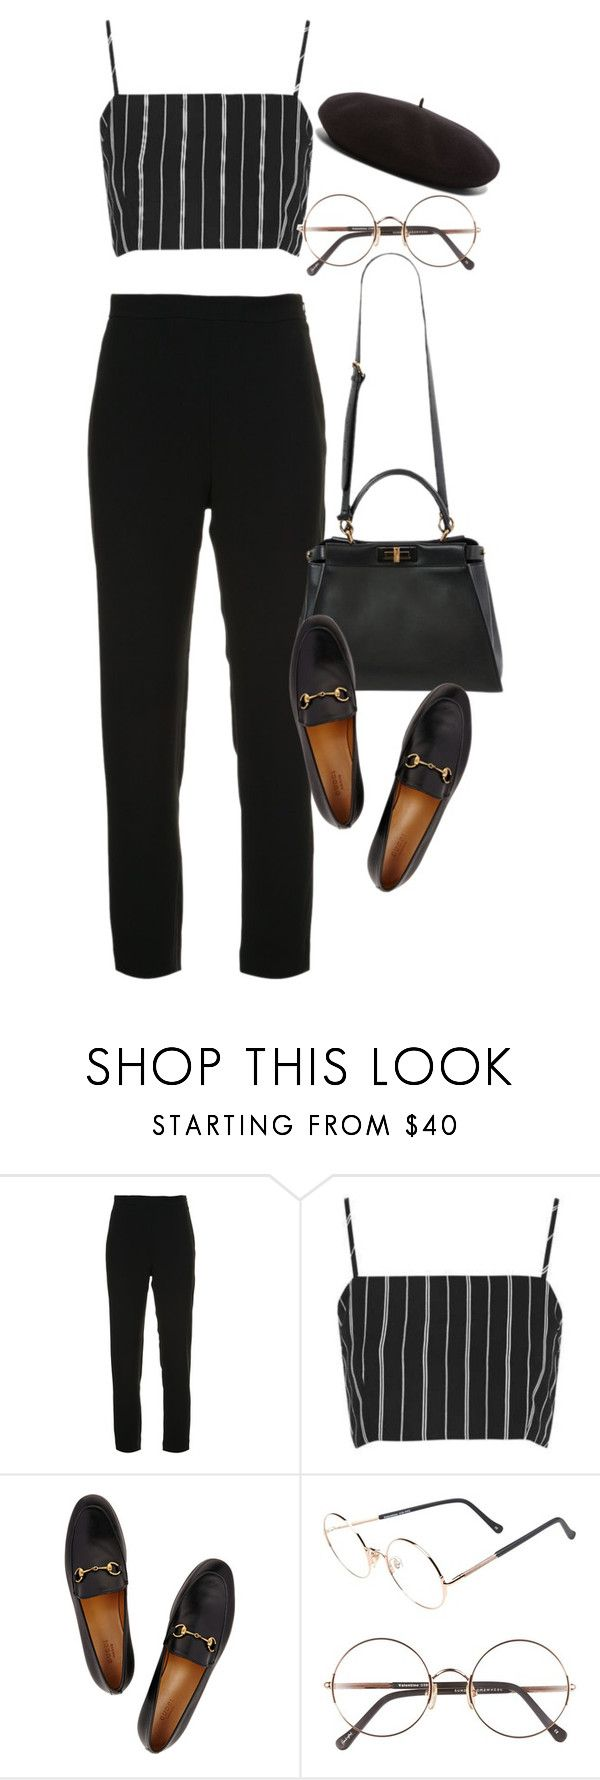 """""""Sem título #1441"""" by oh-its-anna ❤ liked on Polyvore featuring Brandon Maxwell, Topshop, Fendi, Gucci, Sunday Somewhere and Yves Saint Laurent"""